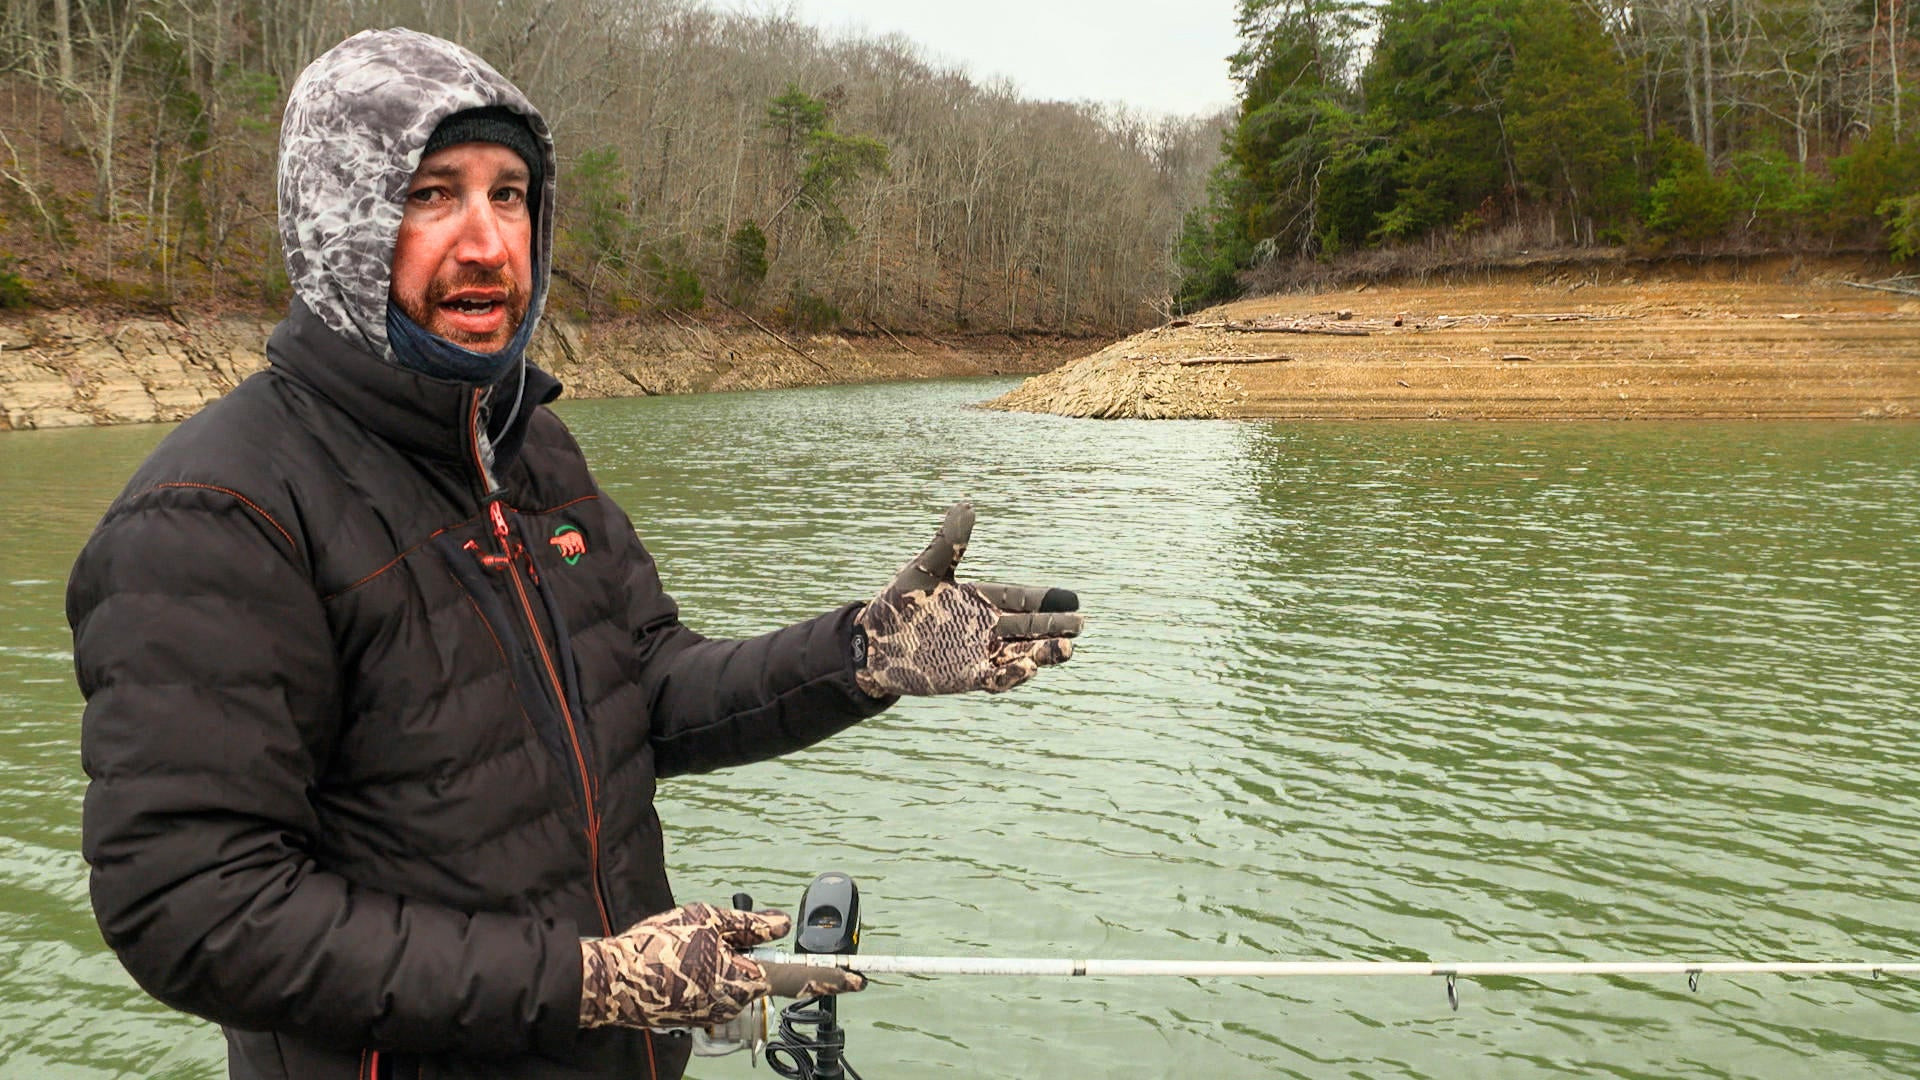 Finding Prespawn Bass on Highland Reservoirs with Finesse Crankbaits